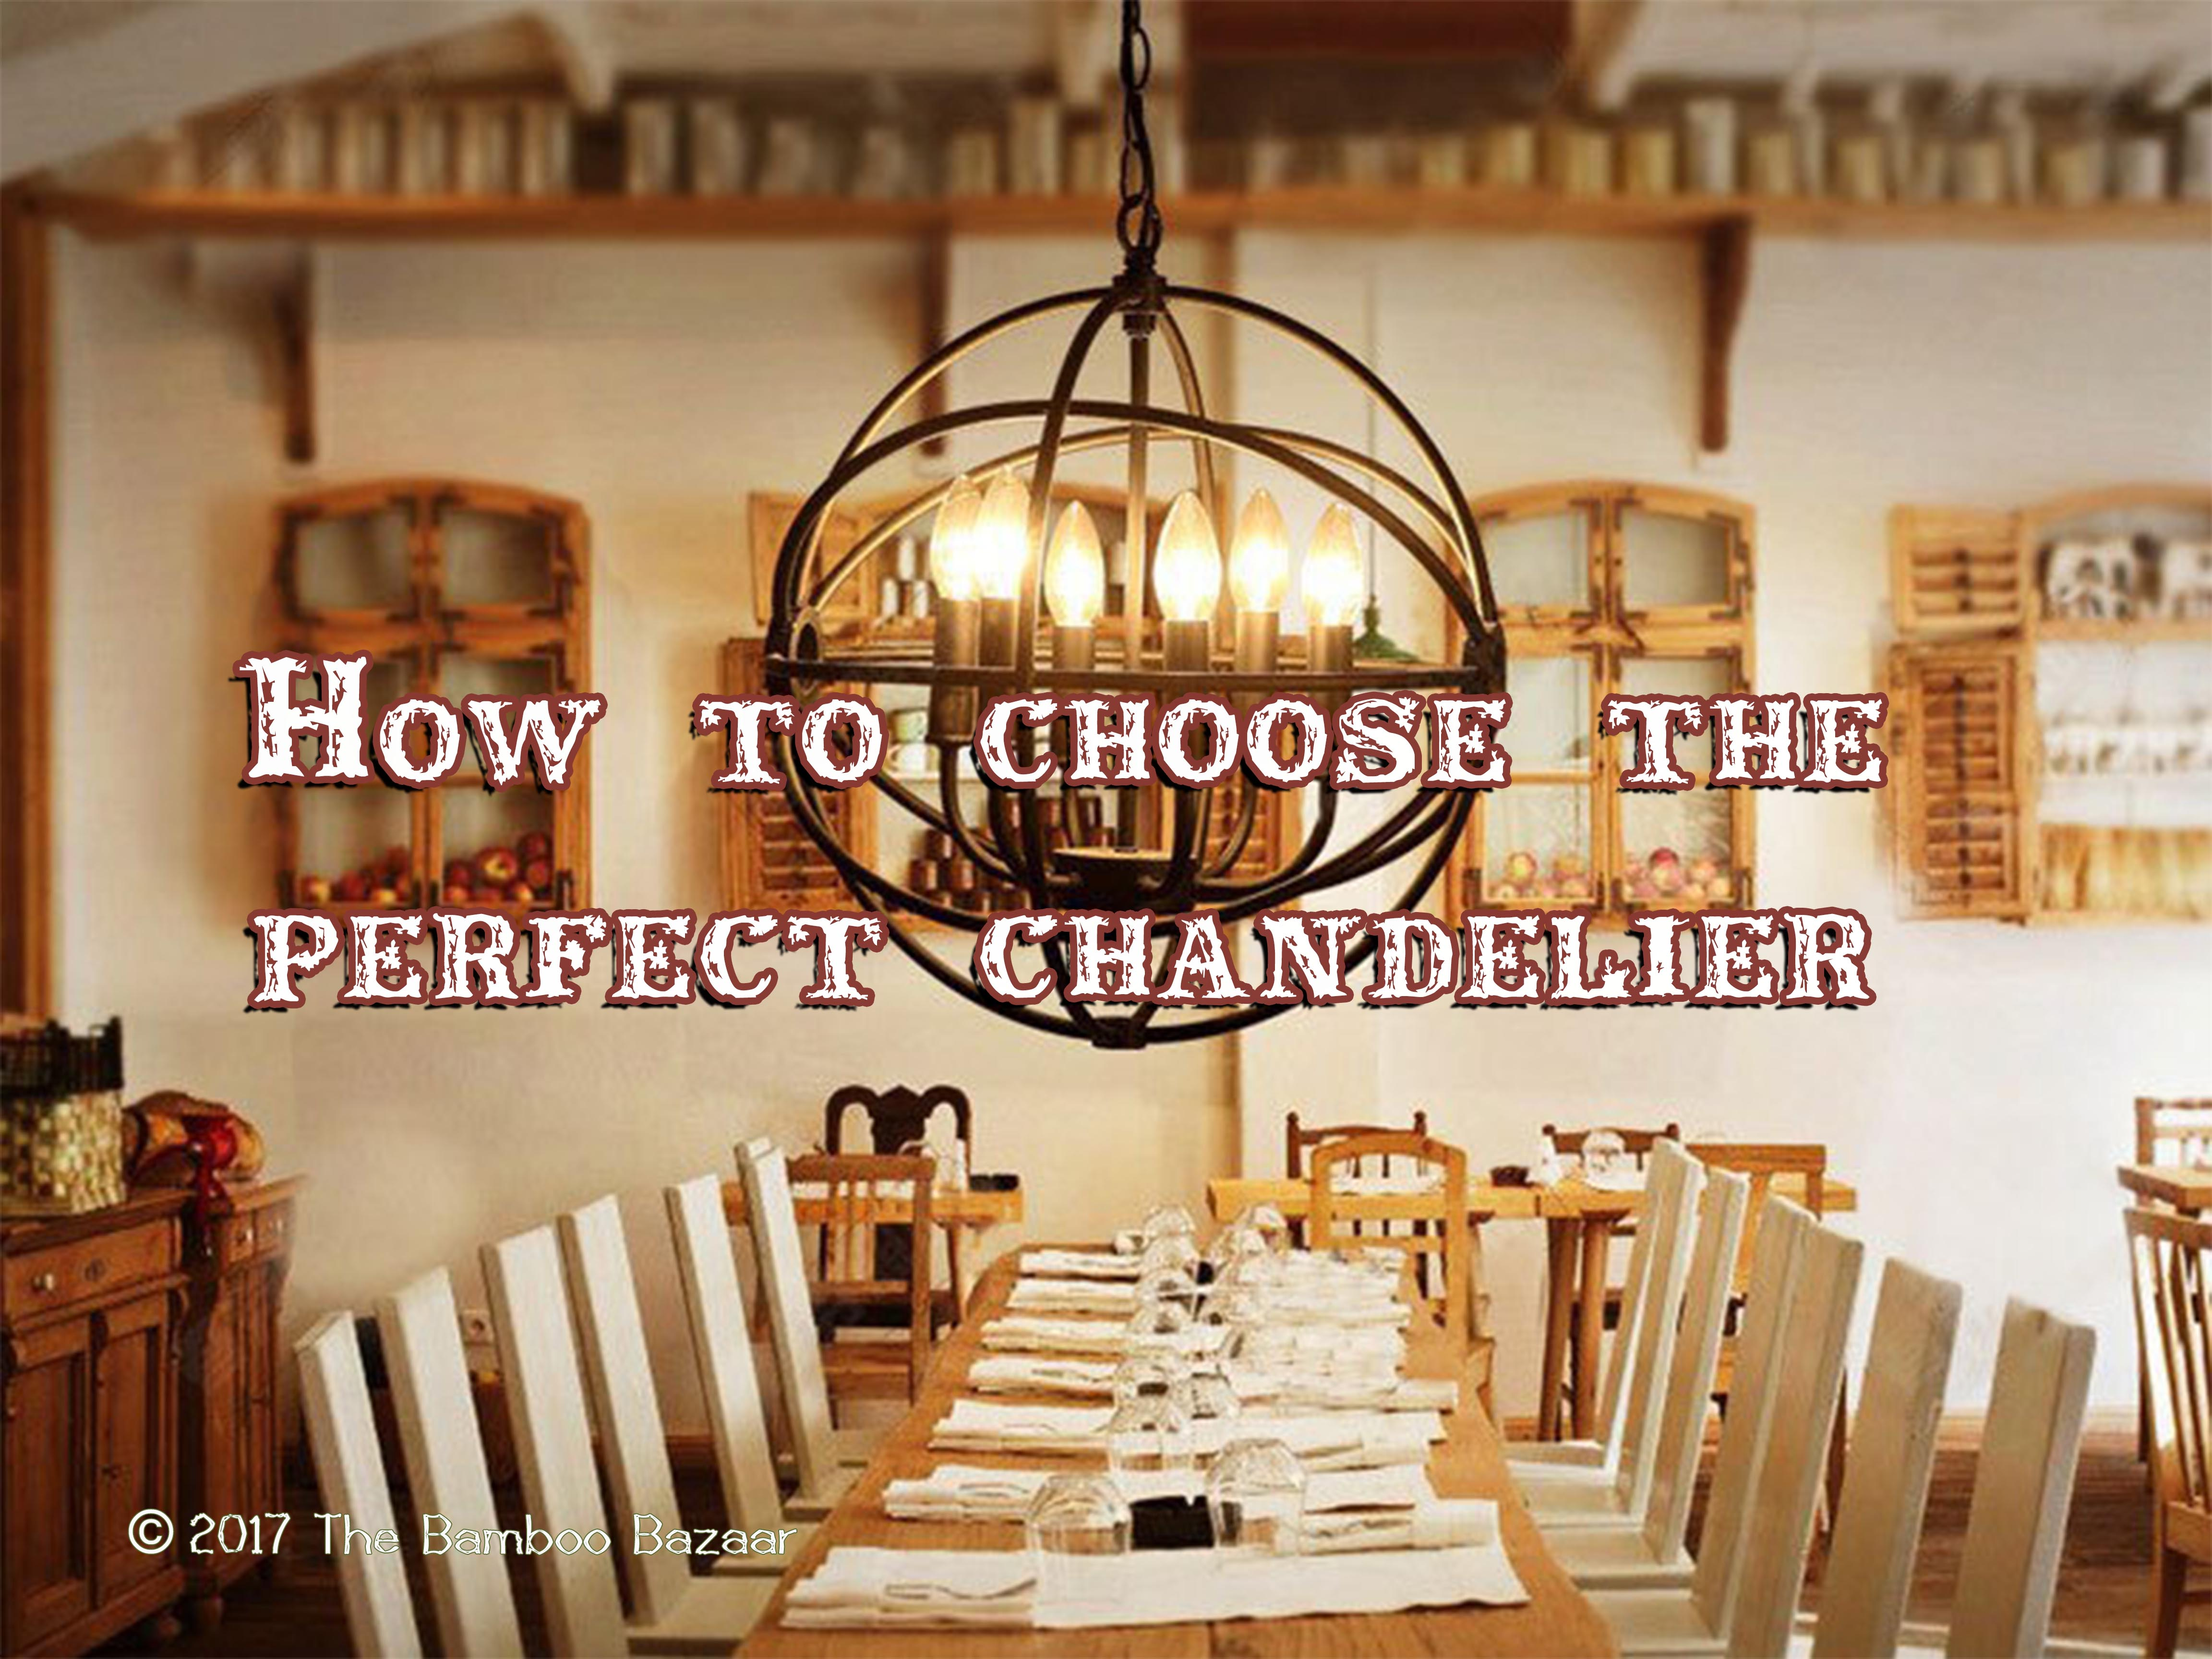 How to choose the perfect chandelier